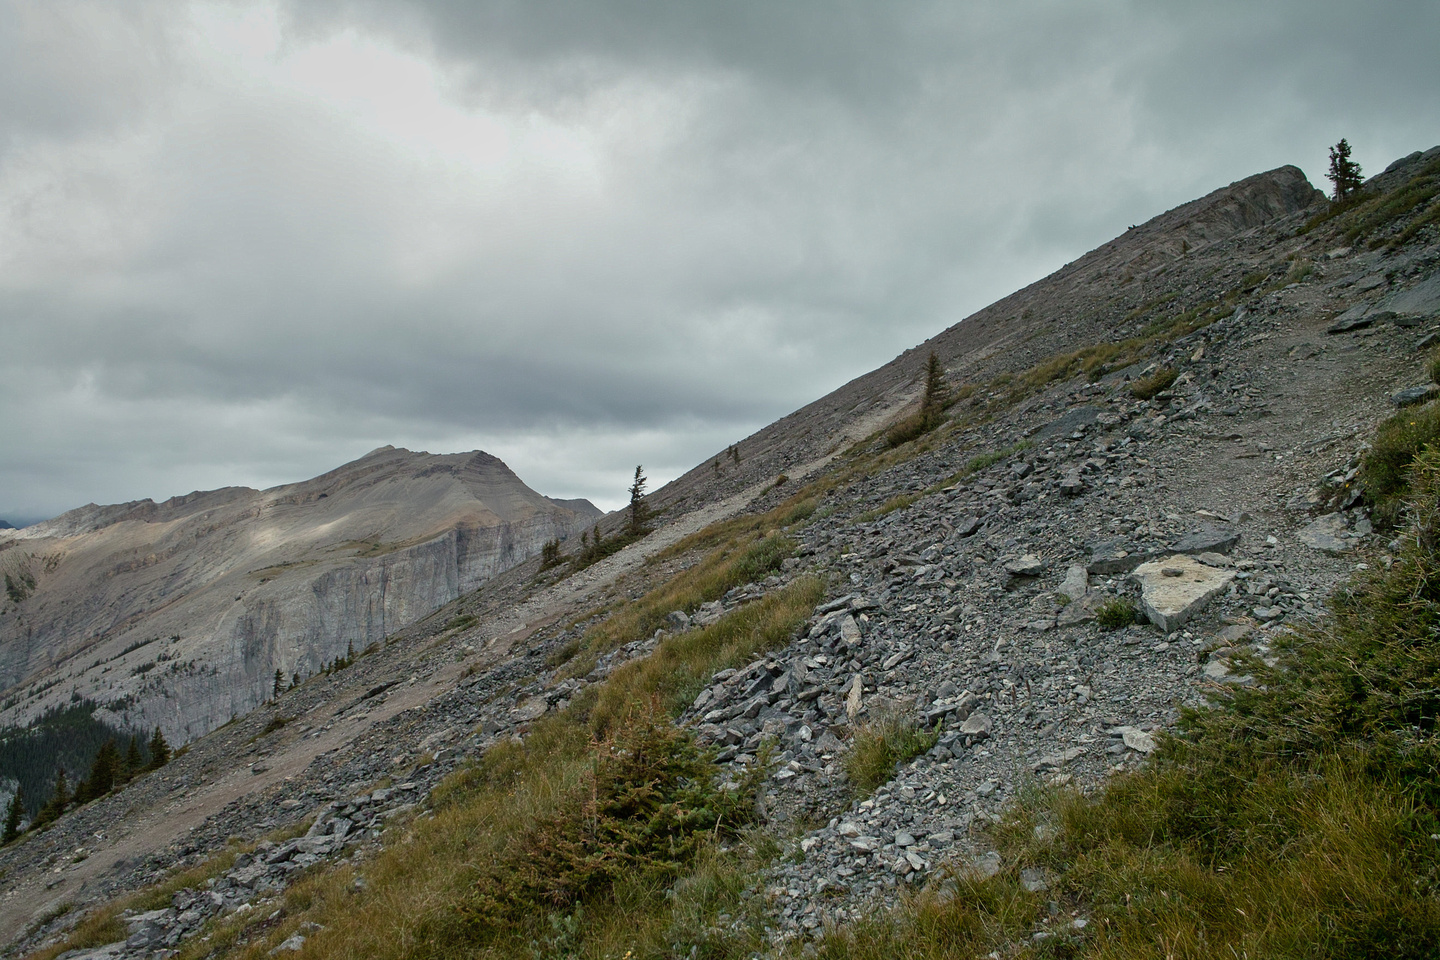 Looking back at the route up to Ha Ling's summit as I cut over to Miner's Peak. EEOR in the background.